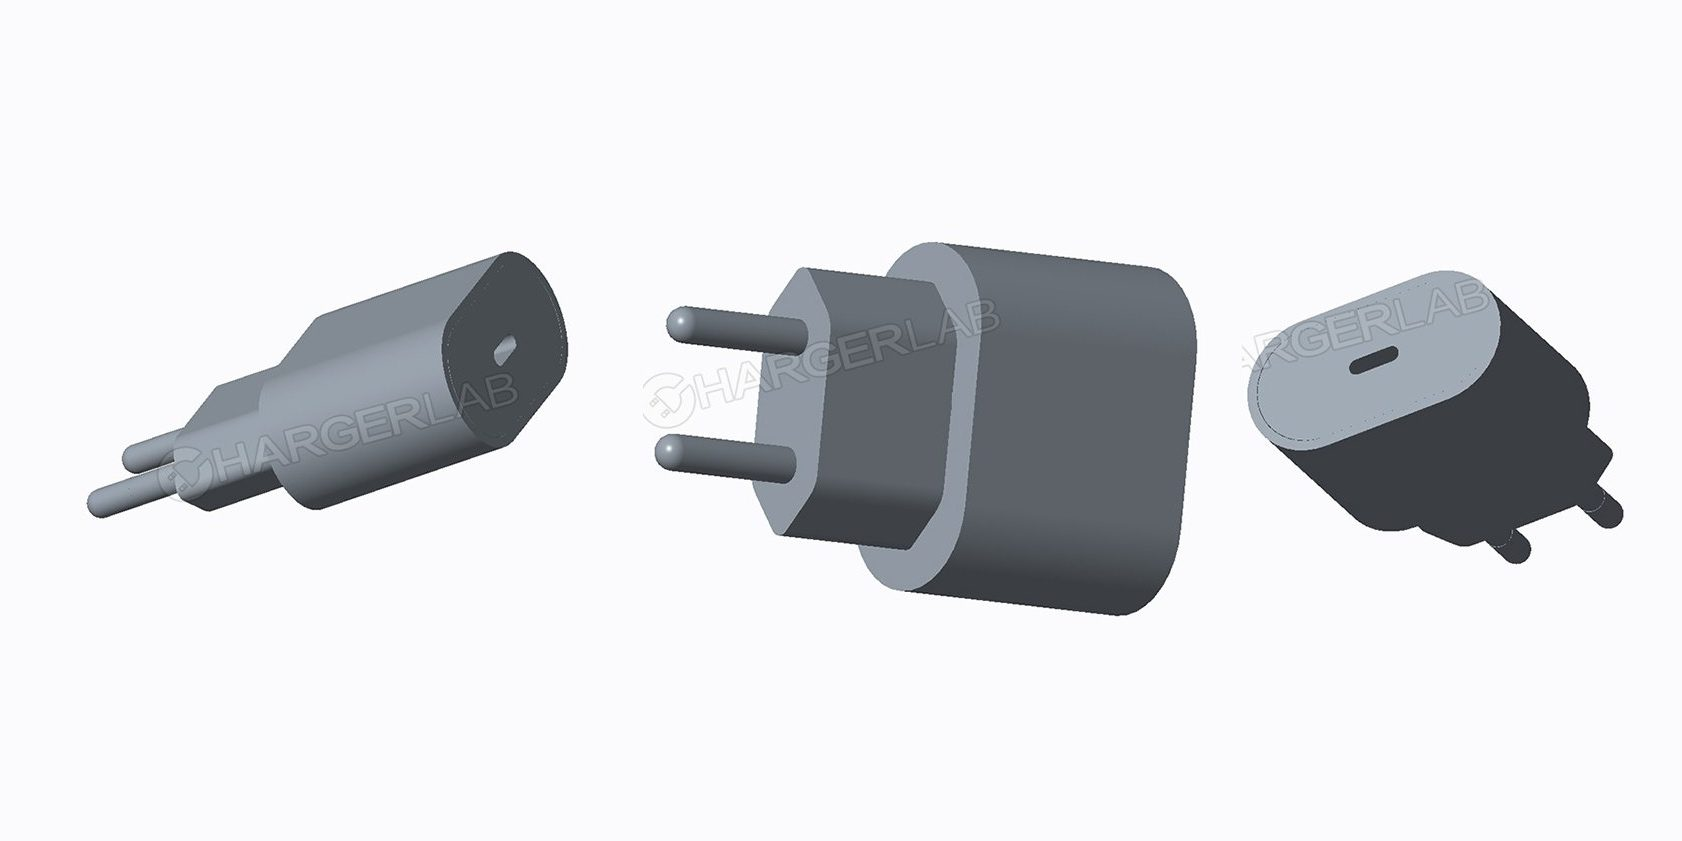 This year's iPhones may require an official USB-C charger for fast charging